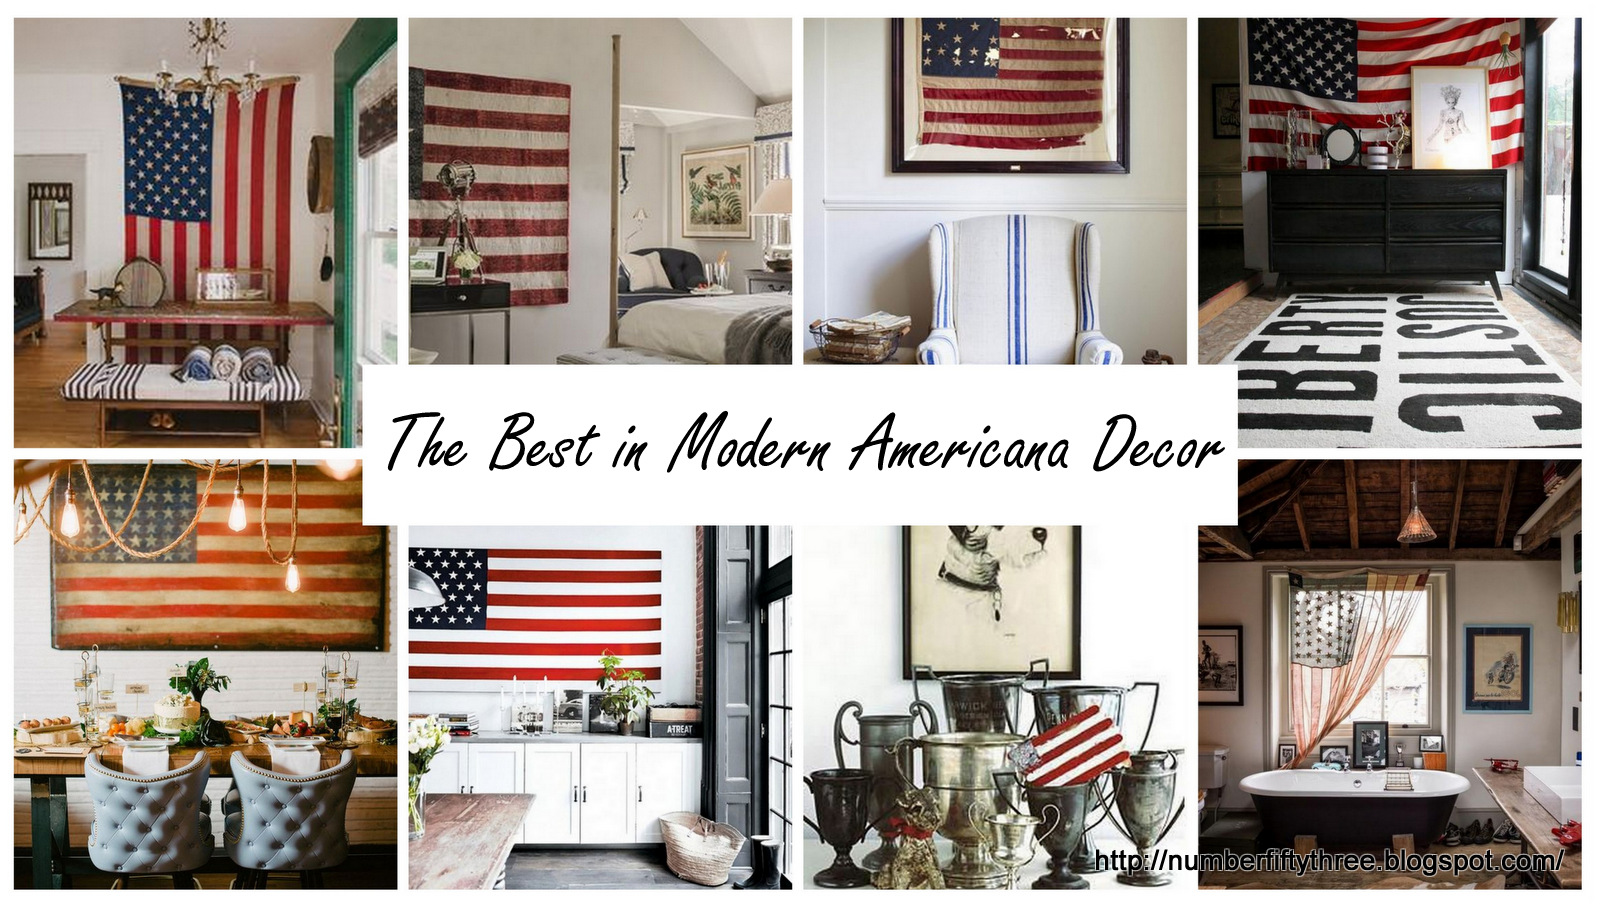 With That Said I M Not So Much A Fan Of The Country Americana Look It S Bit Too For Me What Am More Drawn To Is Antique Modern